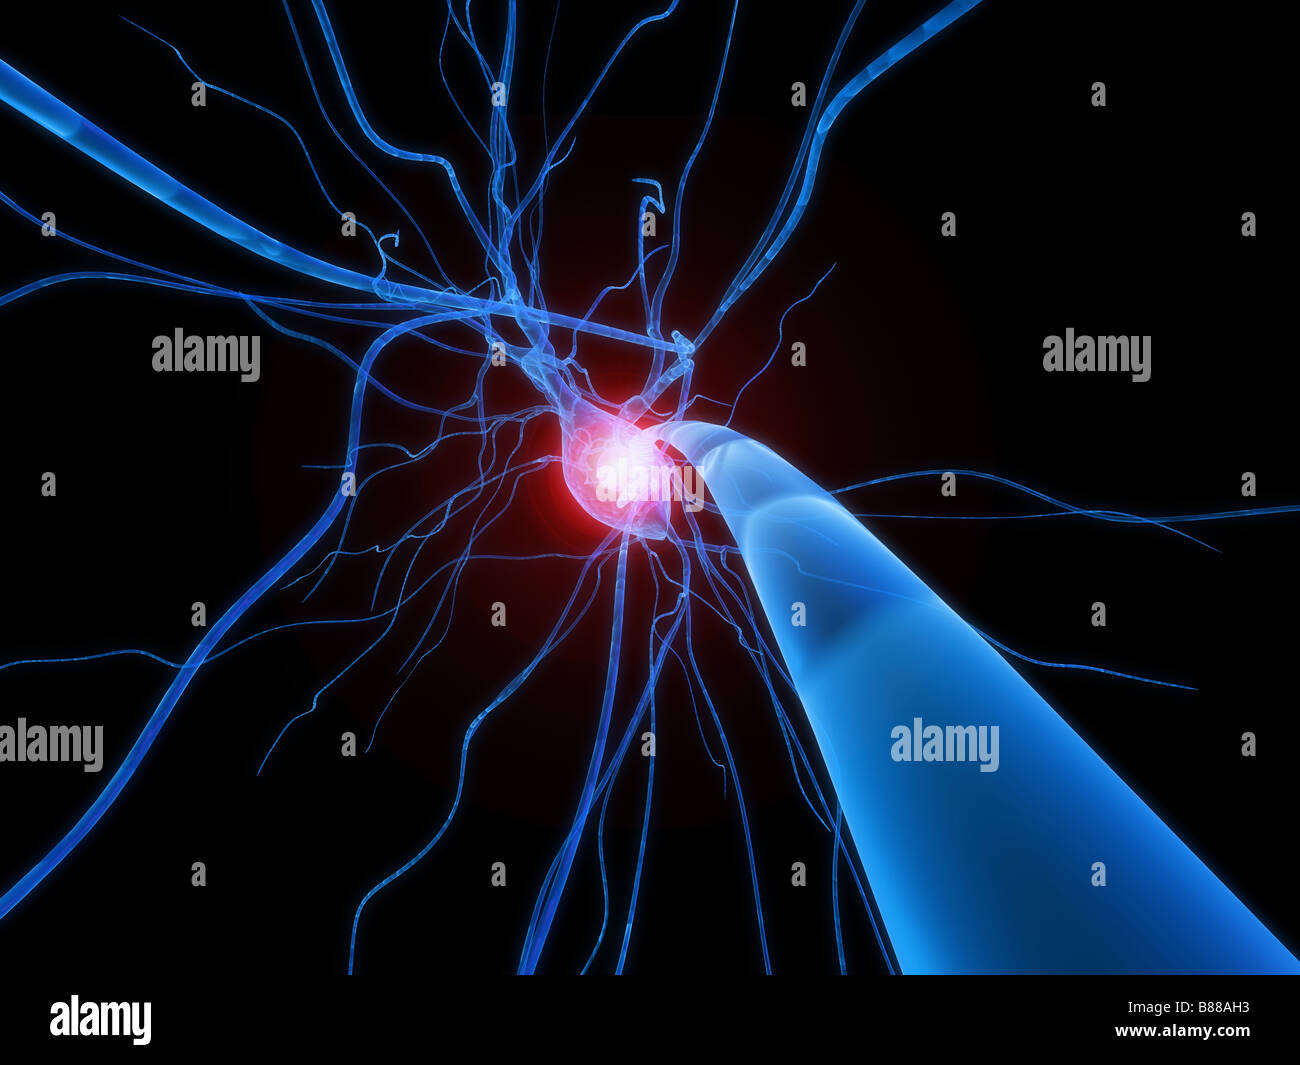 active nerve cell - Stock Image